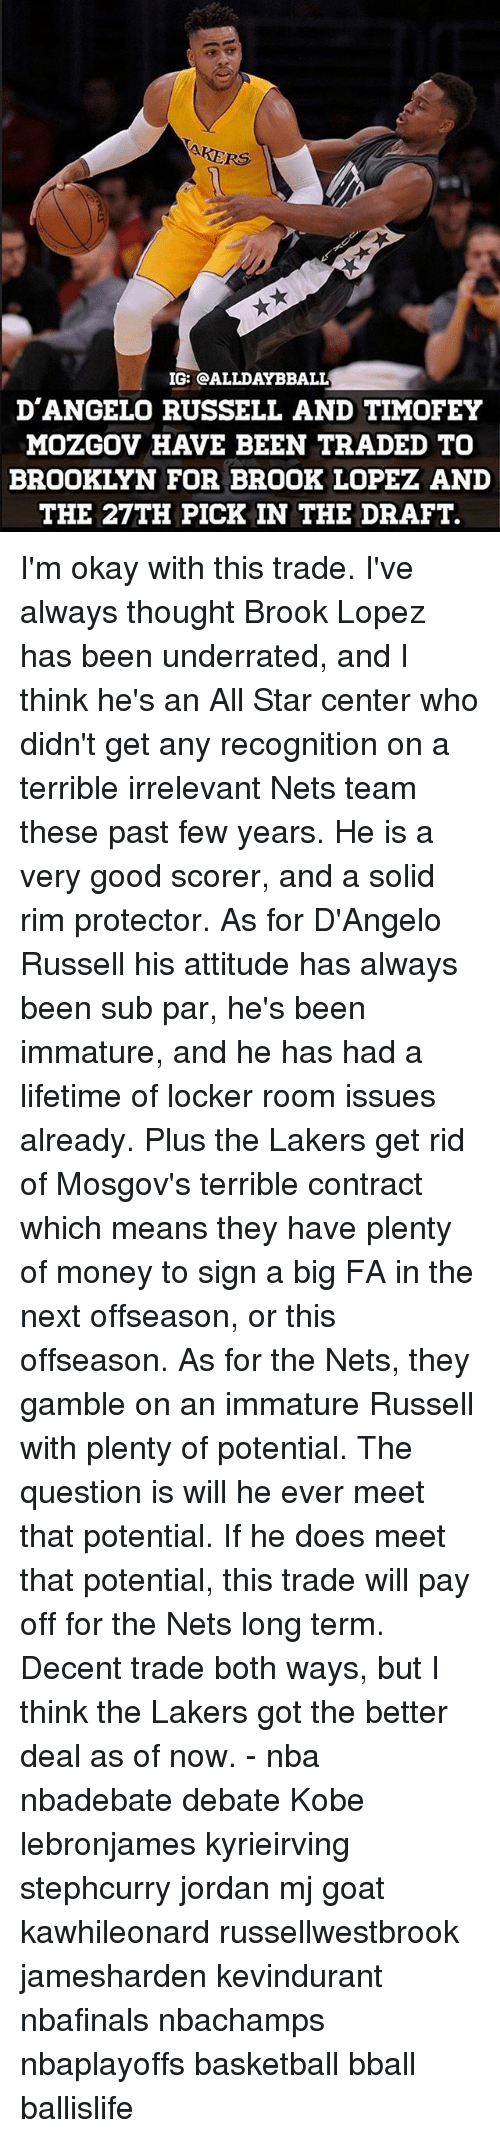 past-few-years: KERS  IG: CALLDAYBBALL  D'ANGELO RUSSELL AND TIMOFEY  MOZGOV HAVE BEEN TRADED TO  BROOKLYN FOR BROOK LOPEZ AND  THE 27TH PICK IN THE DRAFT. I'm okay with this trade. I've always thought Brook Lopez has been underrated, and I think he's an All Star center who didn't get any recognition on a terrible irrelevant Nets team these past few years. He is a very good scorer, and a solid rim protector. As for D'Angelo Russell his attitude has always been sub par, he's been immature, and he has had a lifetime of locker room issues already. Plus the Lakers get rid of Mosgov's terrible contract which means they have plenty of money to sign a big FA in the next offseason, or this offseason. As for the Nets, they gamble on an immature Russell with plenty of potential. The question is will he ever meet that potential. If he does meet that potential, this trade will pay off for the Nets long term. Decent trade both ways, but I think the Lakers got the better deal as of now. - nba nbadebate debate Kobe lebronjames kyrieirving stephcurry jordan mj goat kawhileonard russellwestbrook jamesharden kevindurant nbafinals nbachamps nbaplayoffs basketball bball ballislife